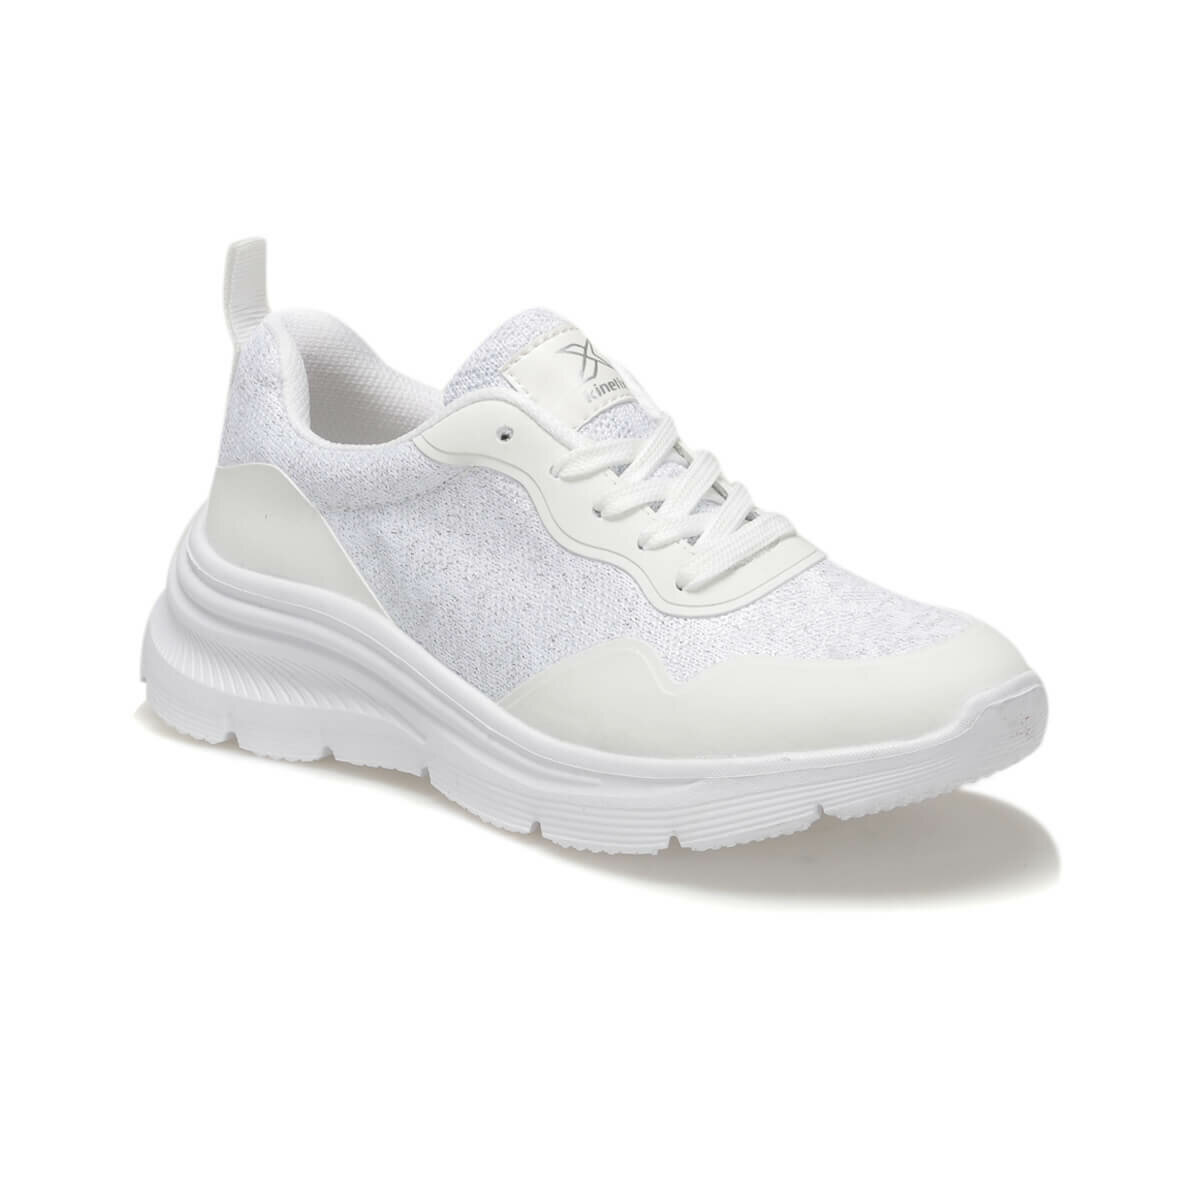 FLO FLORA White Women 'S Sports Shoes KINETIX